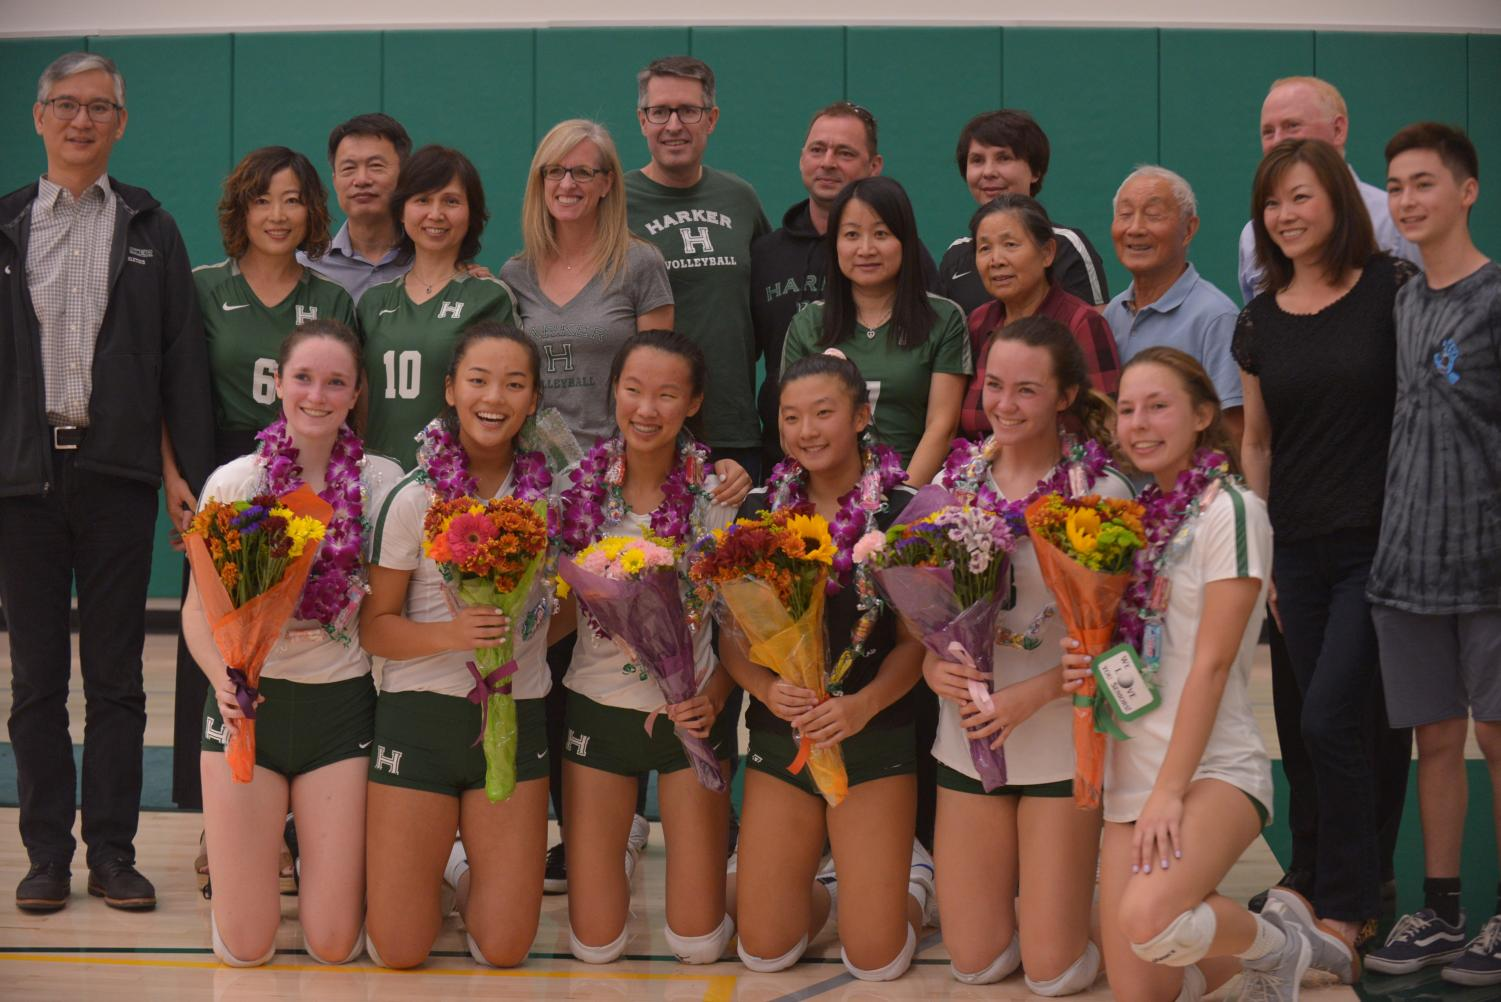 The seniors of the varsity volleyball team pose together with their families after the ceremony. This will be the girls' last home game this season, as they move on to compete in playoffs.